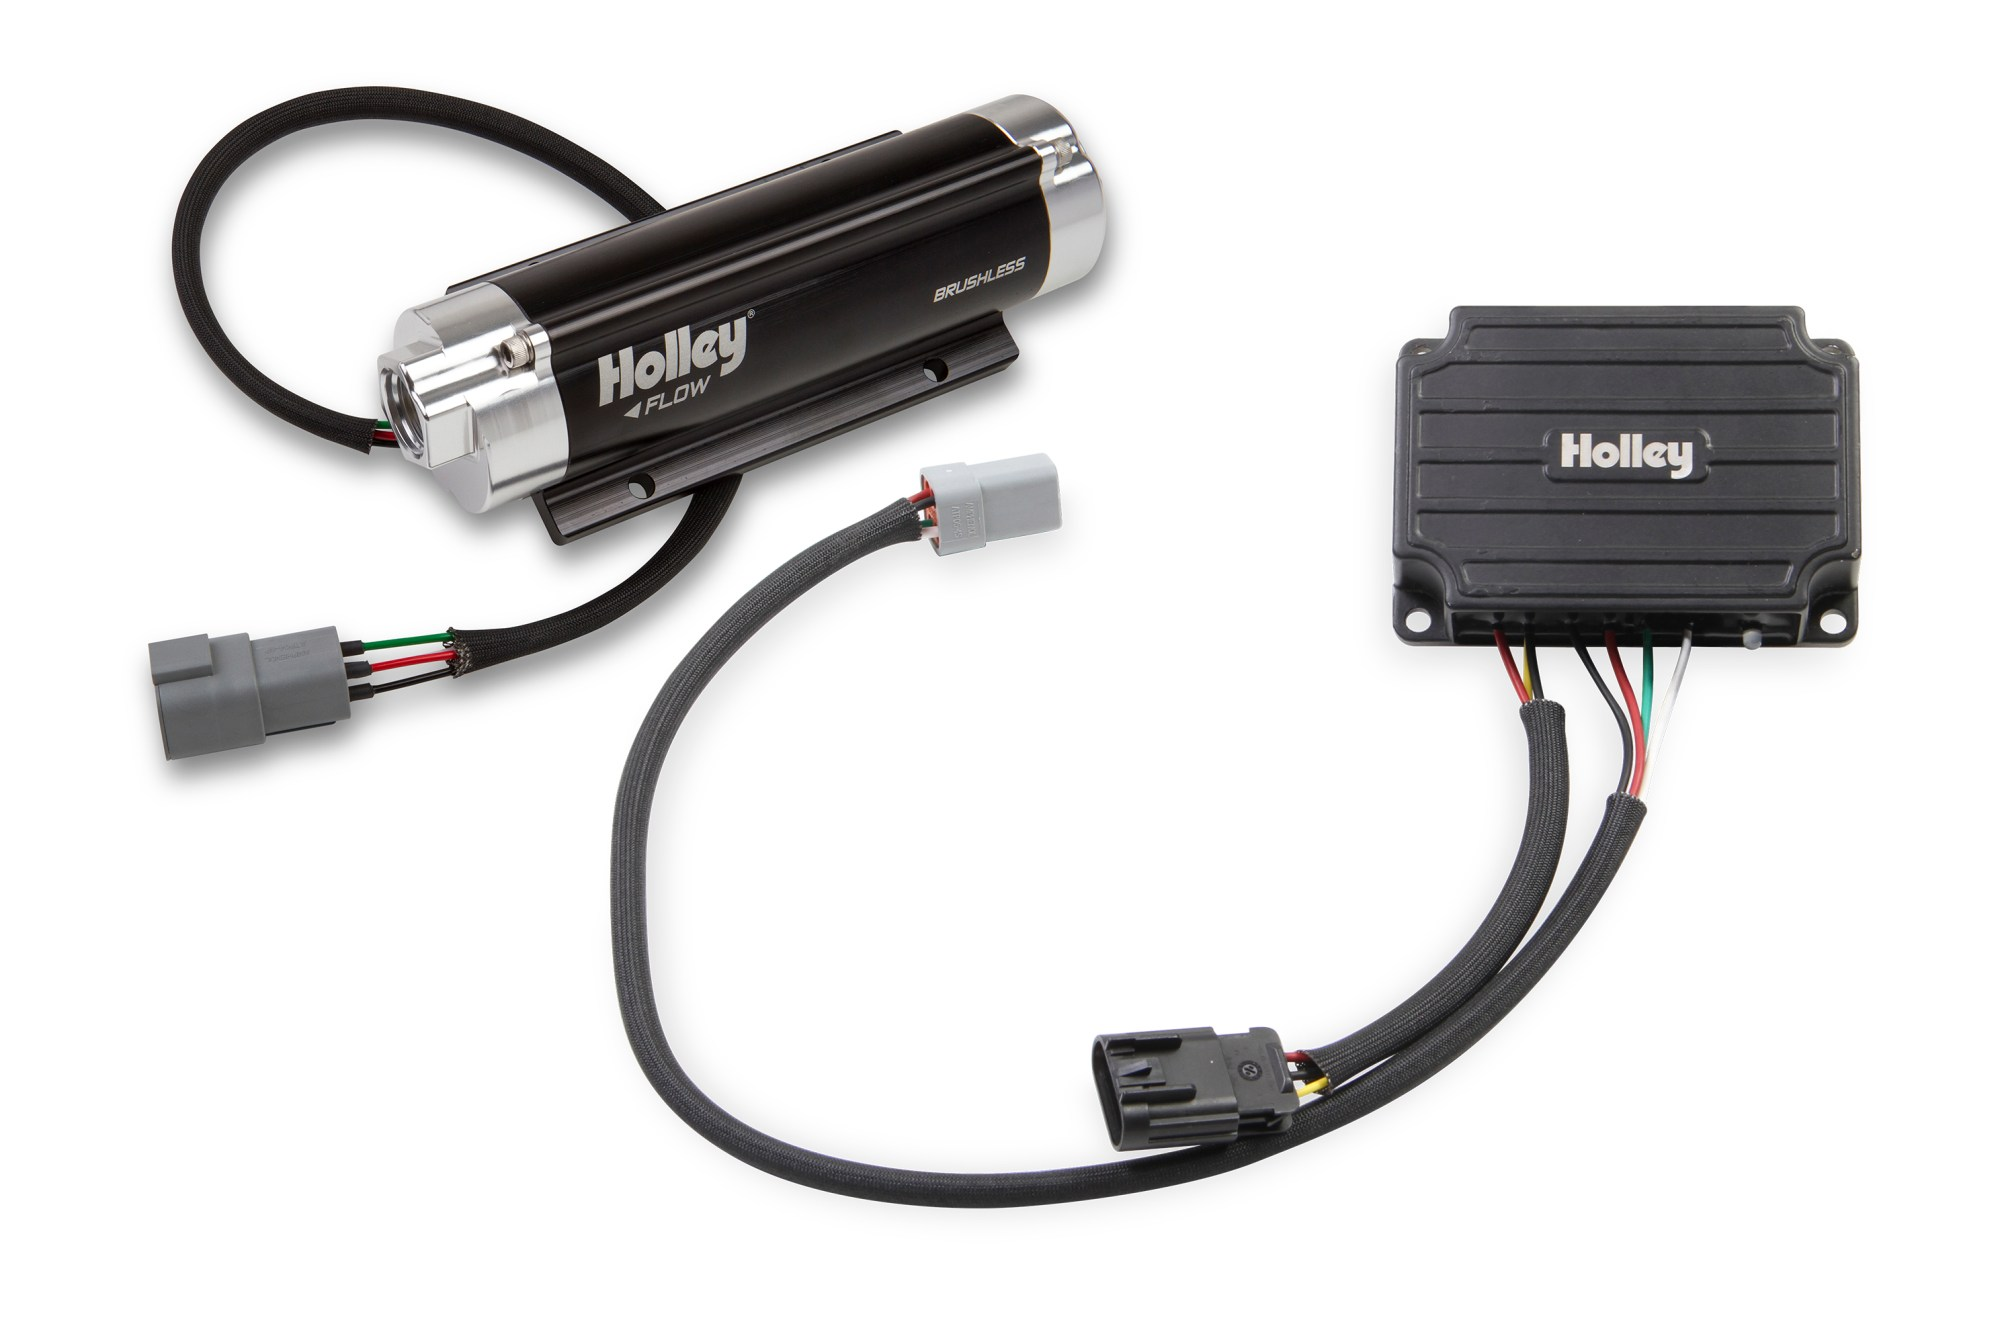 hight resolution of  holley ultra hp brushless fuel pump w controller